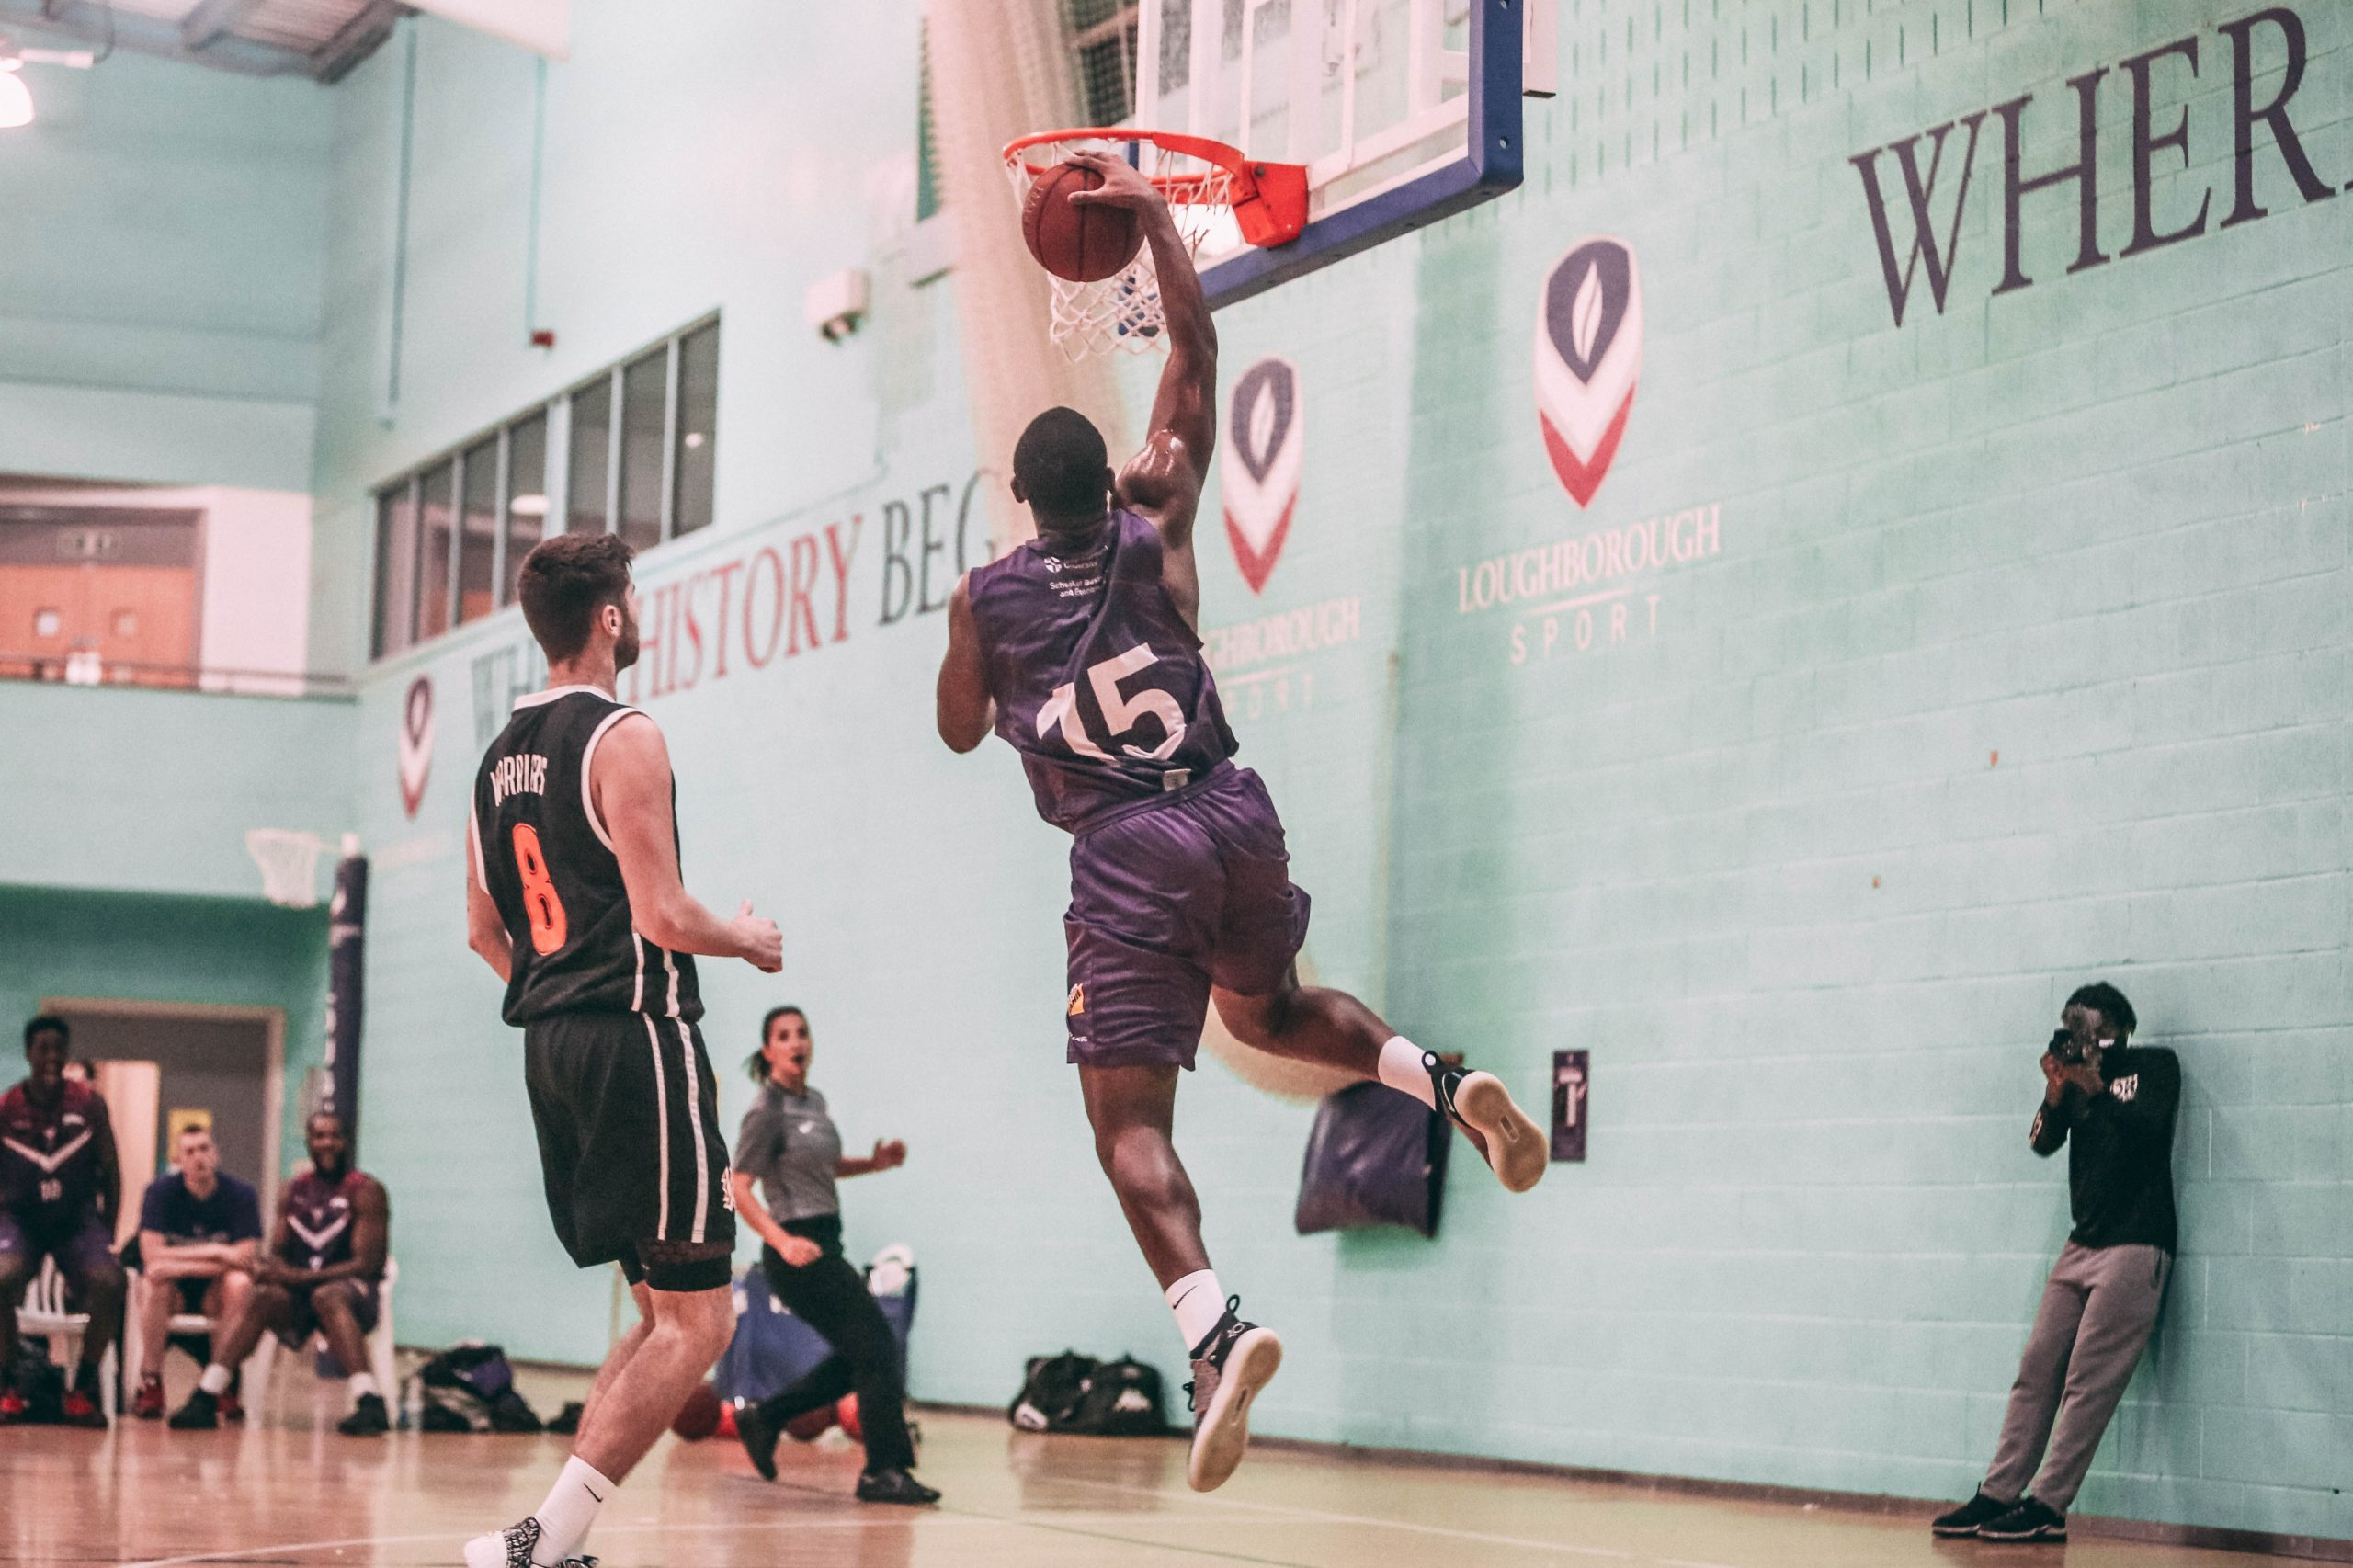 Riders Men fall to Barking Abbey London Lions on the road in second NBL game